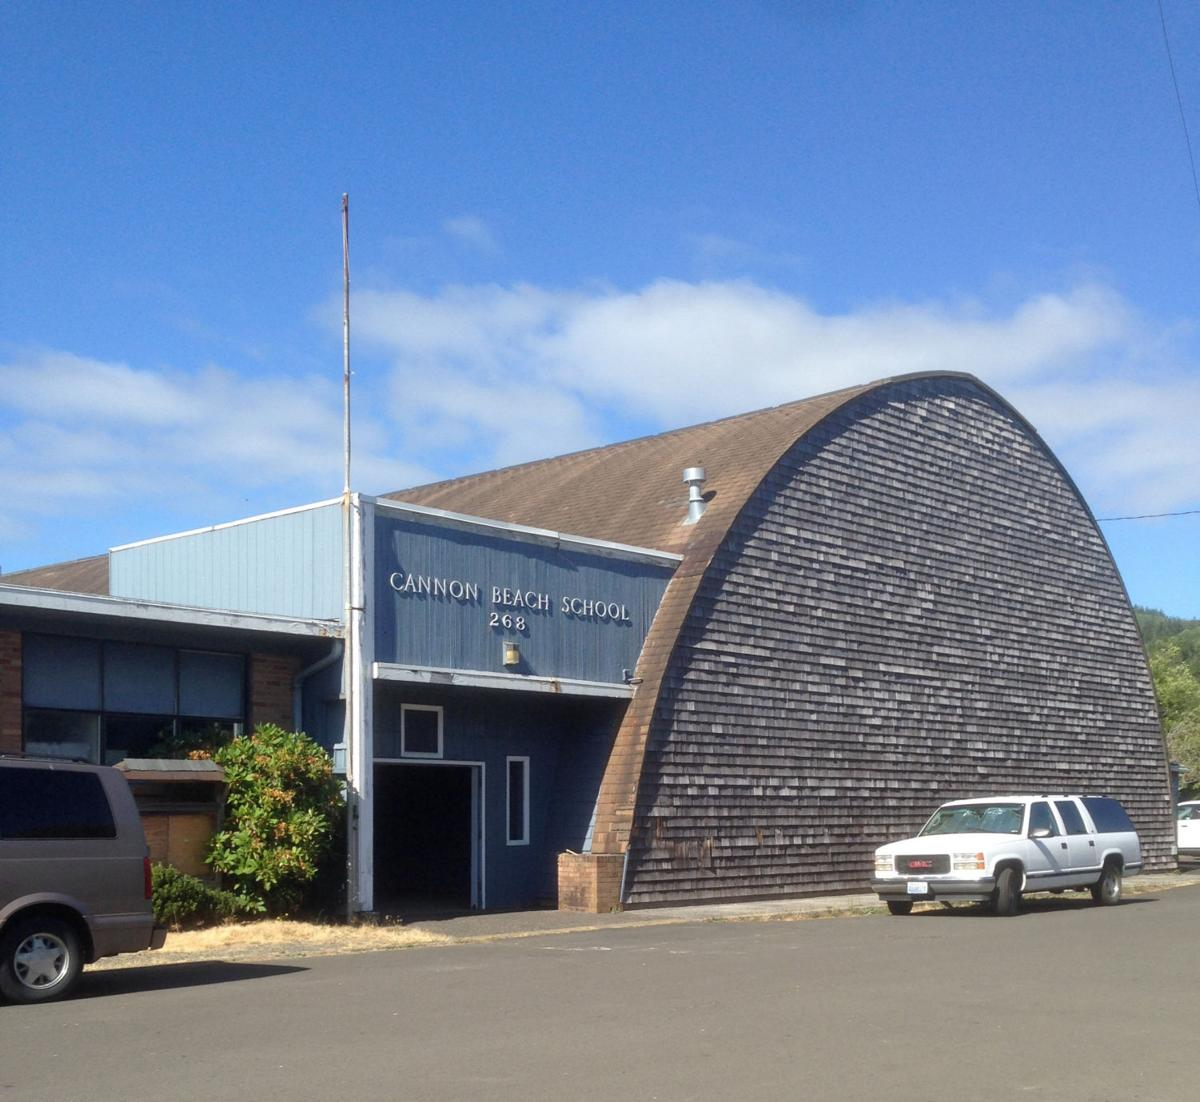 Cannon Beach torn over school purchase